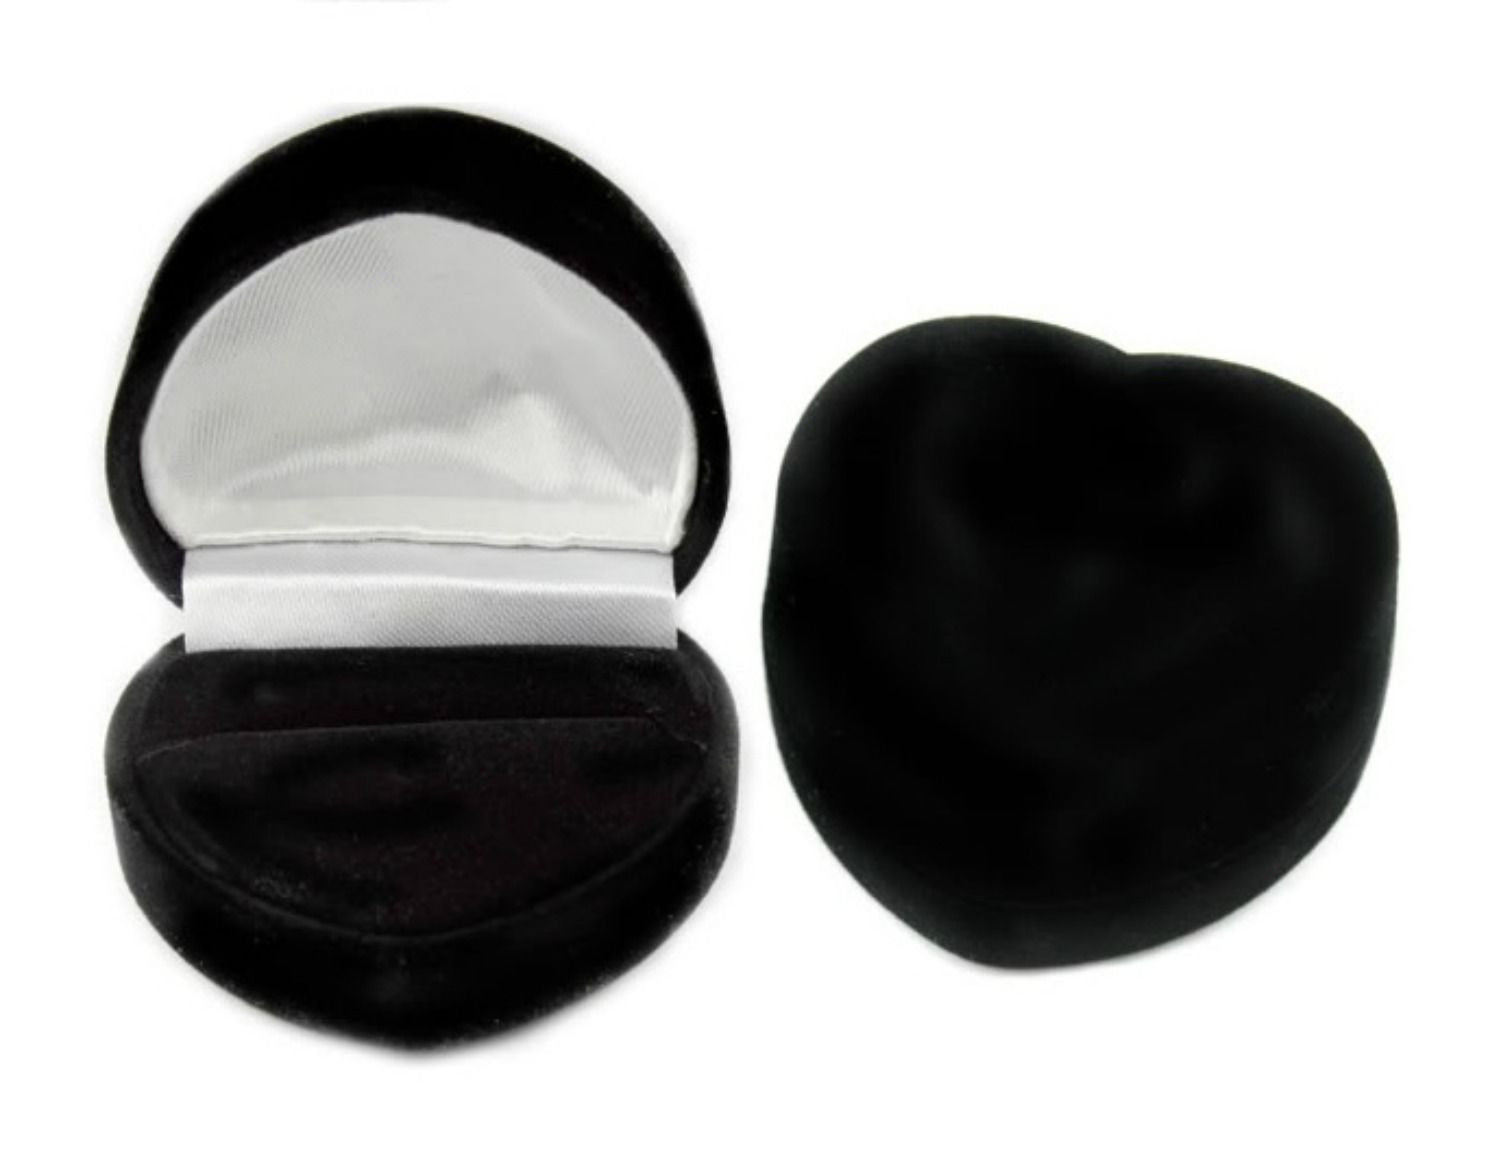 Black velvet heart box free with purchase of our rose gold jewelry collection at Sterling Silver Fashion